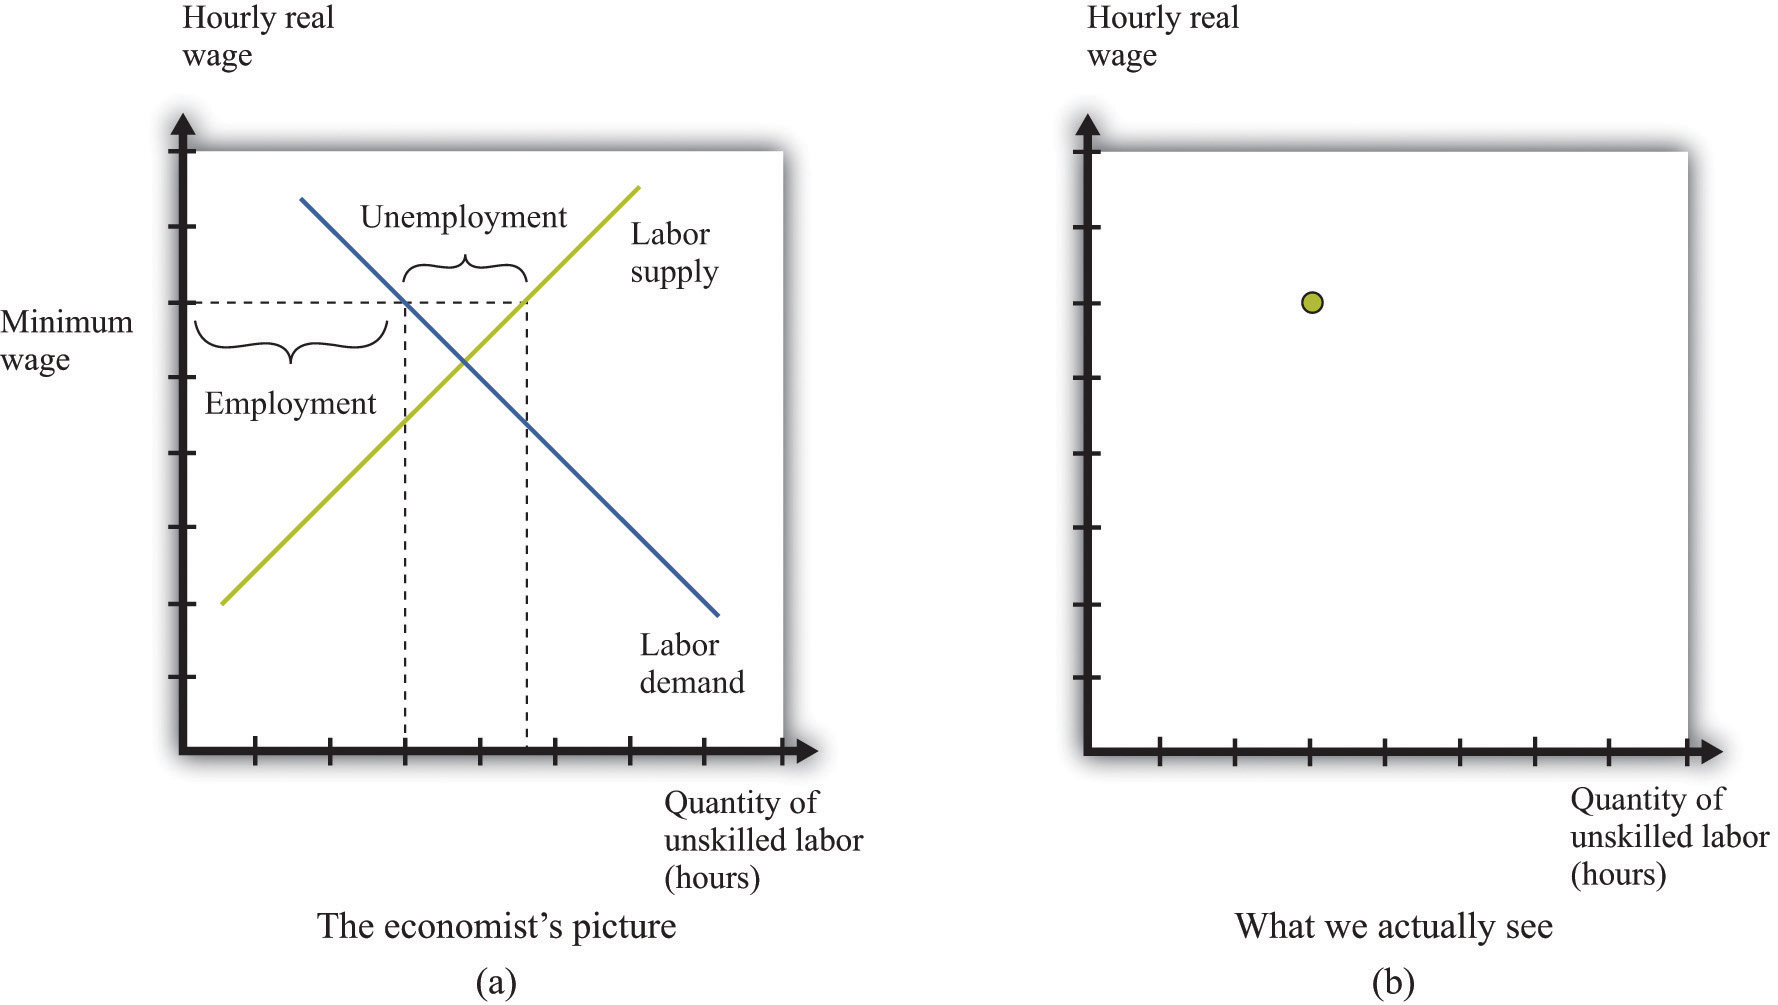 empirical evidence on minimum wages we construct an entire framework based on the supply and demand curves for labor a but at any time we observe only a single data point the wage and the